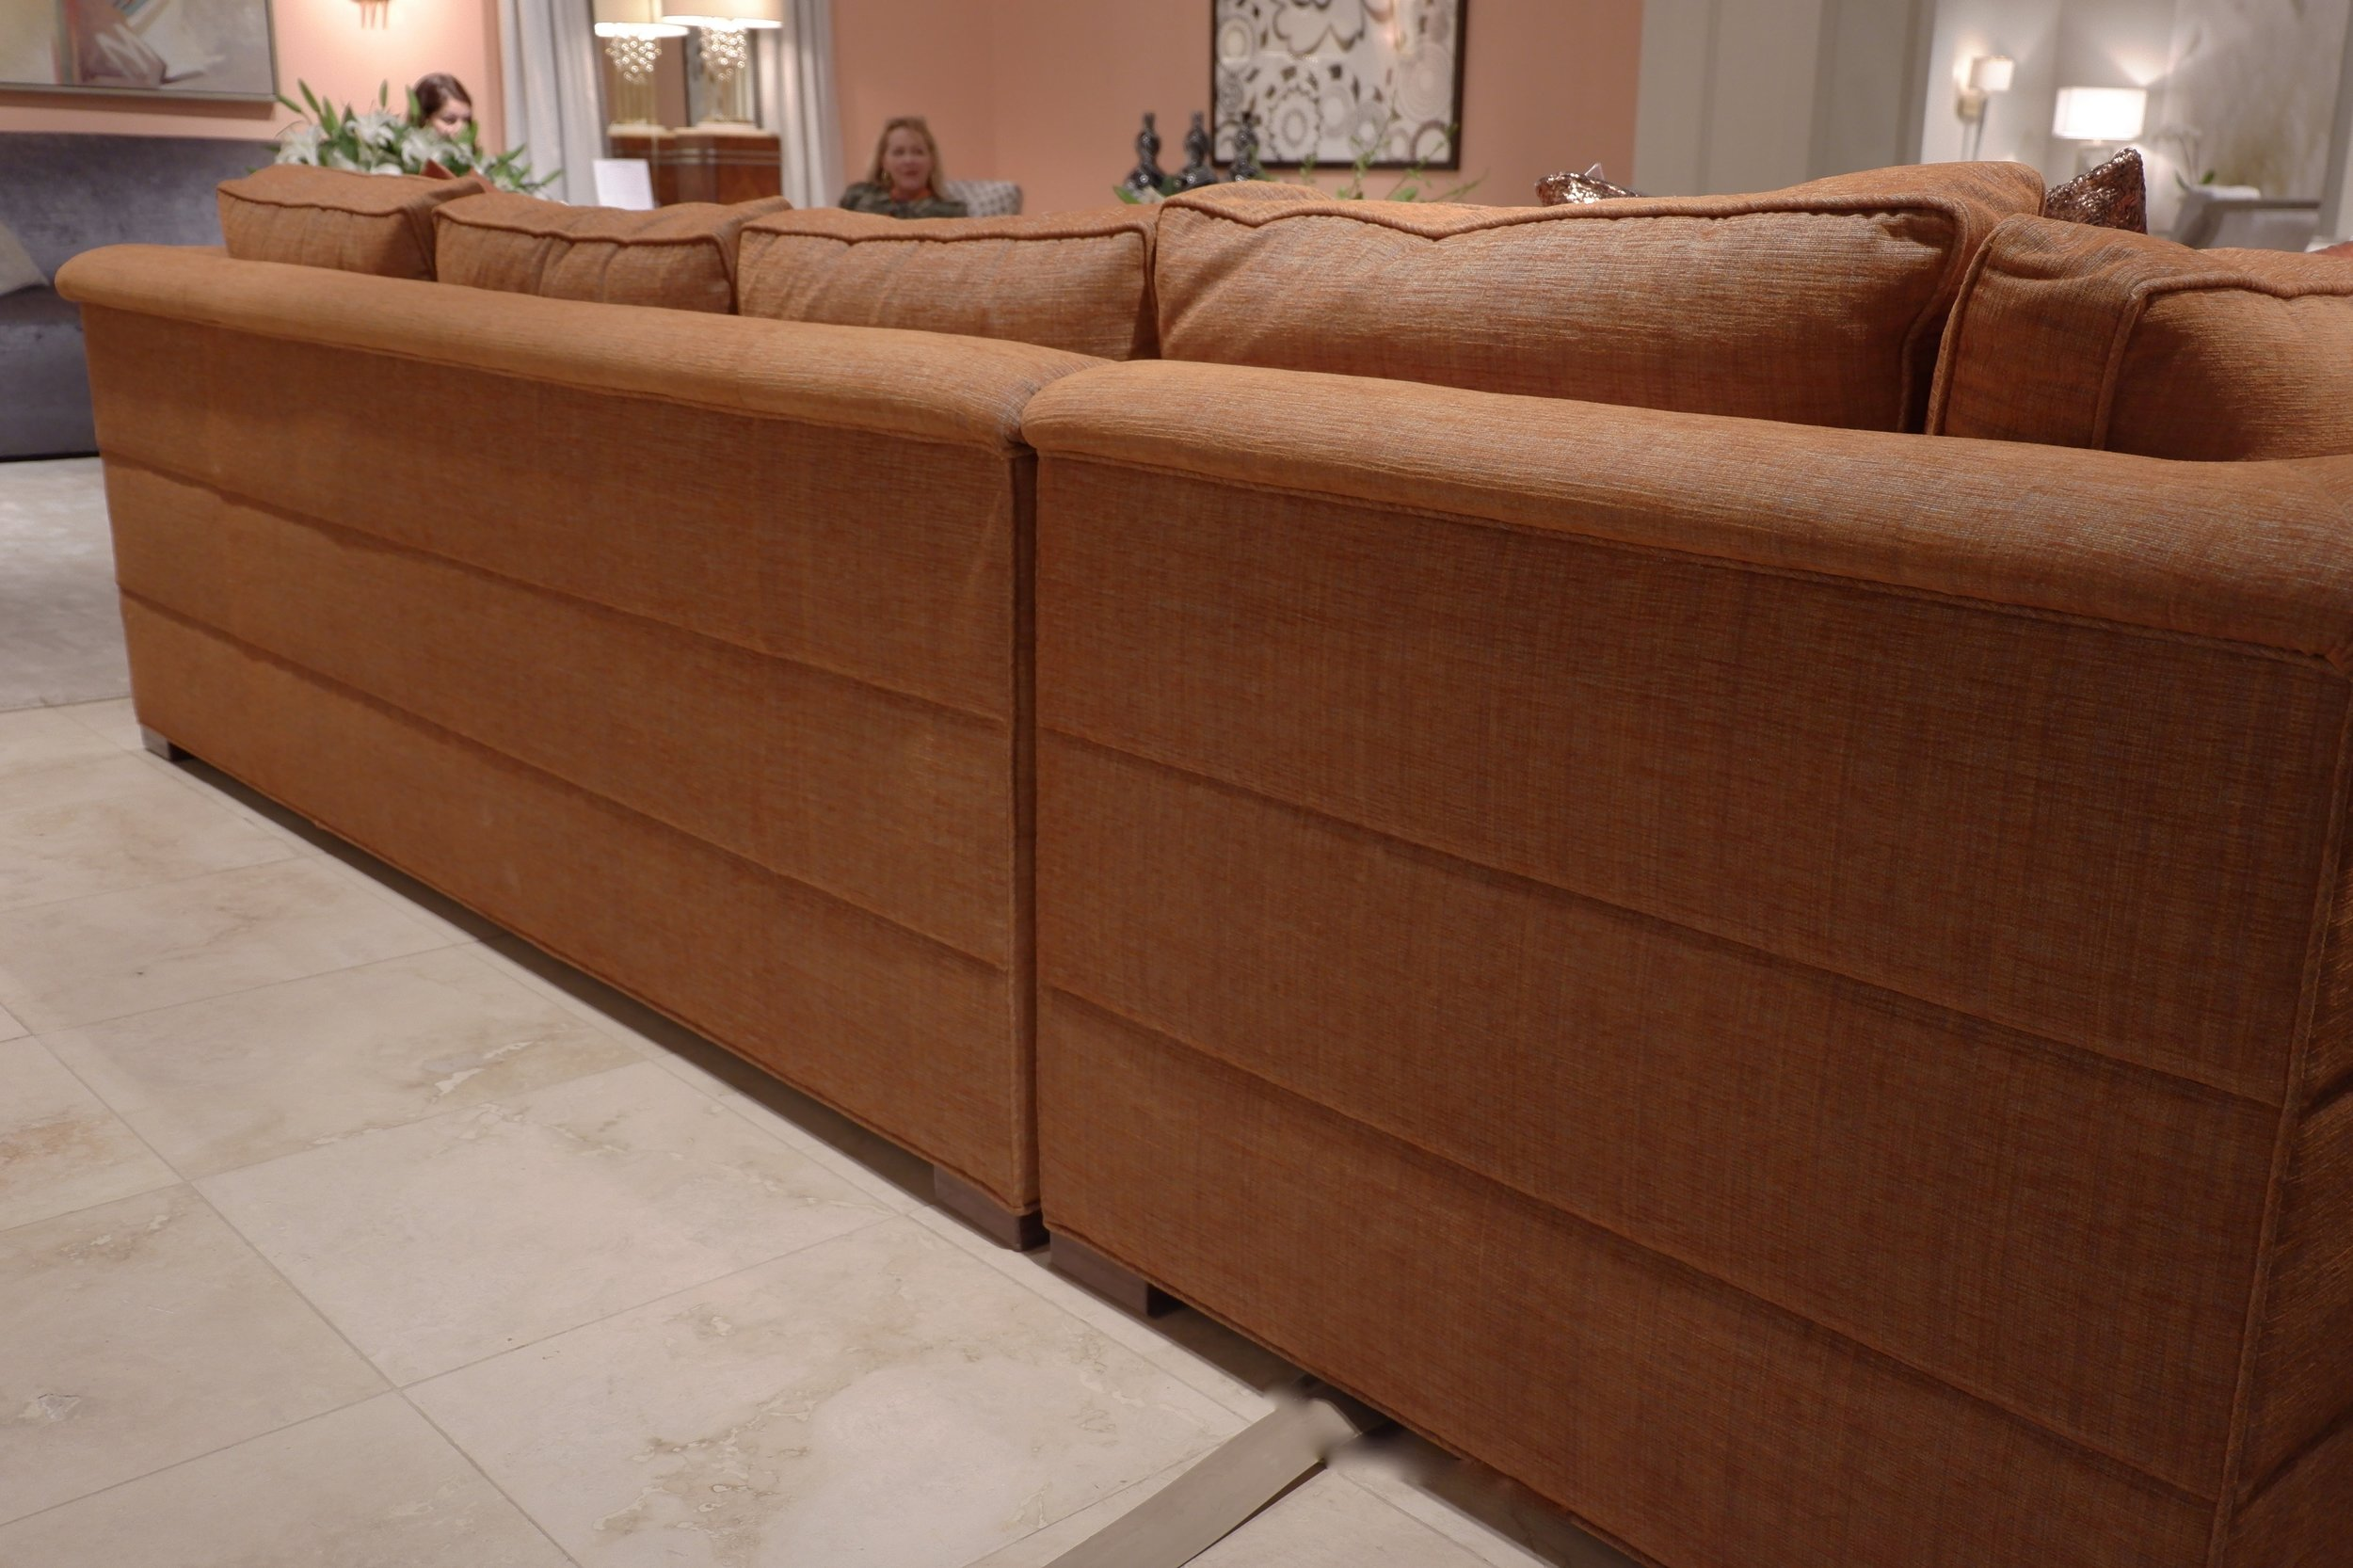 A sofa (in a soft shade of persimmon, no?) with channel detail along the back. Jamie Drake for Theodore Alexander.